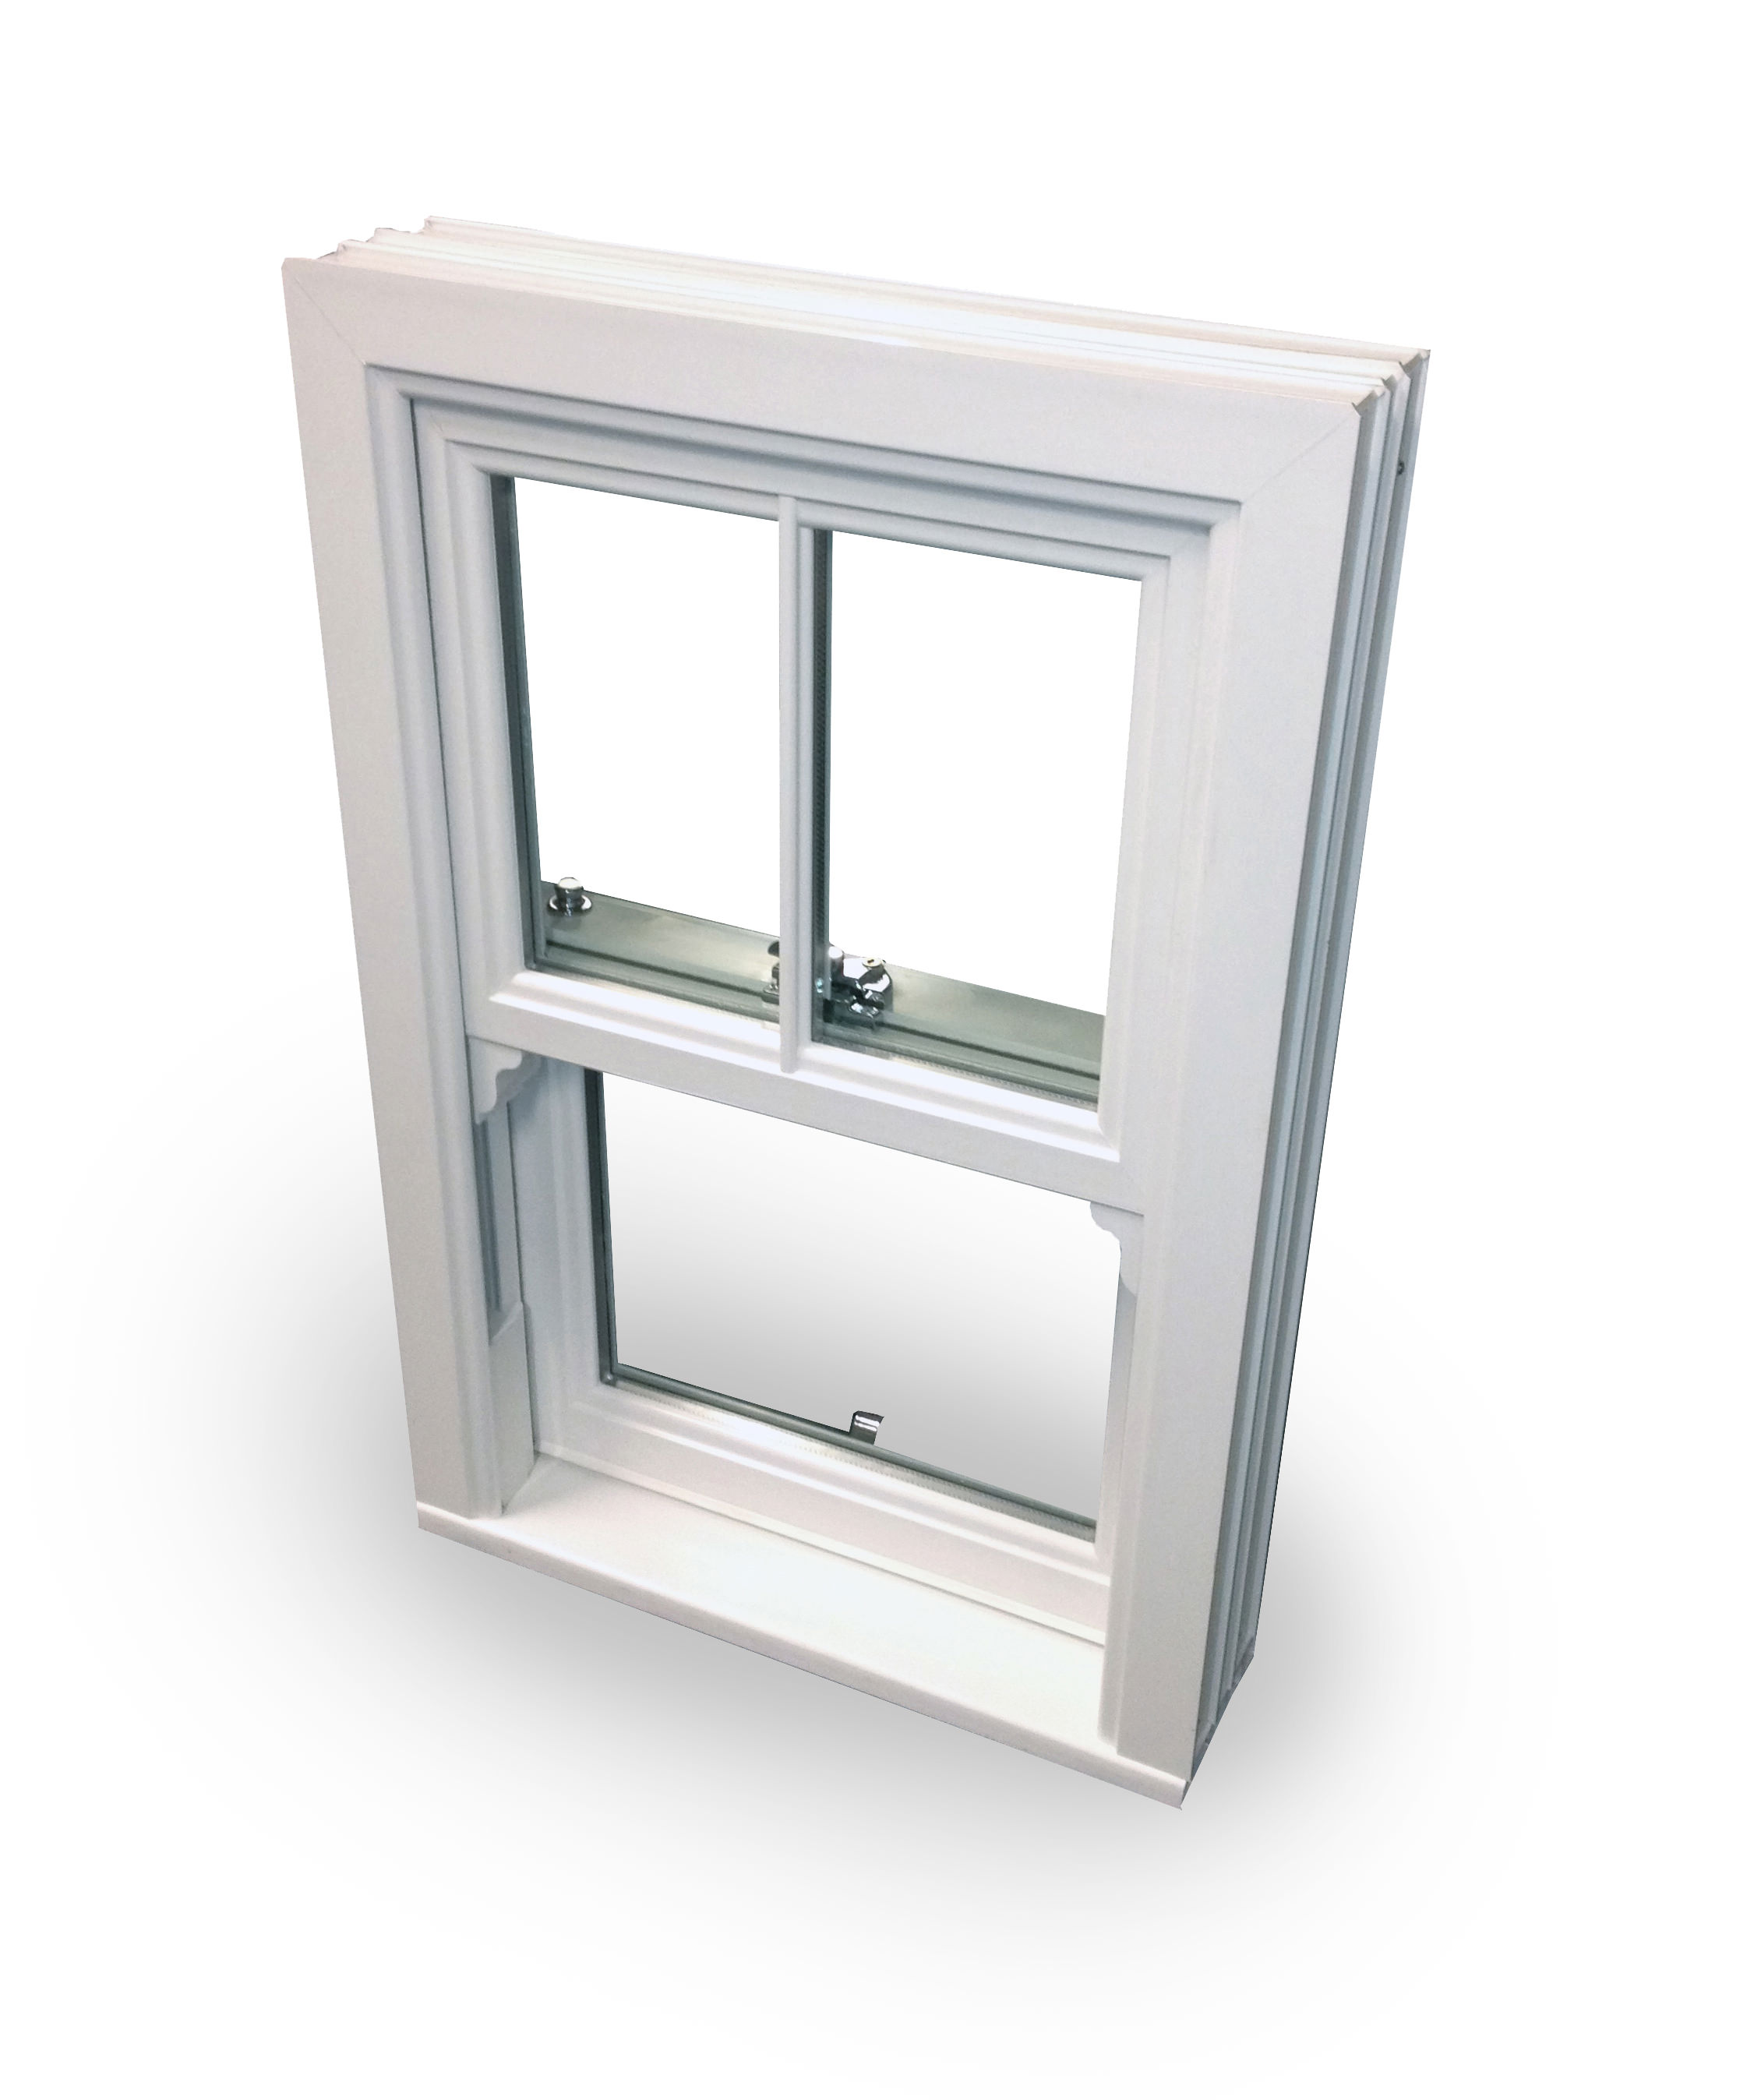 Double Glazed Windows Hampshire